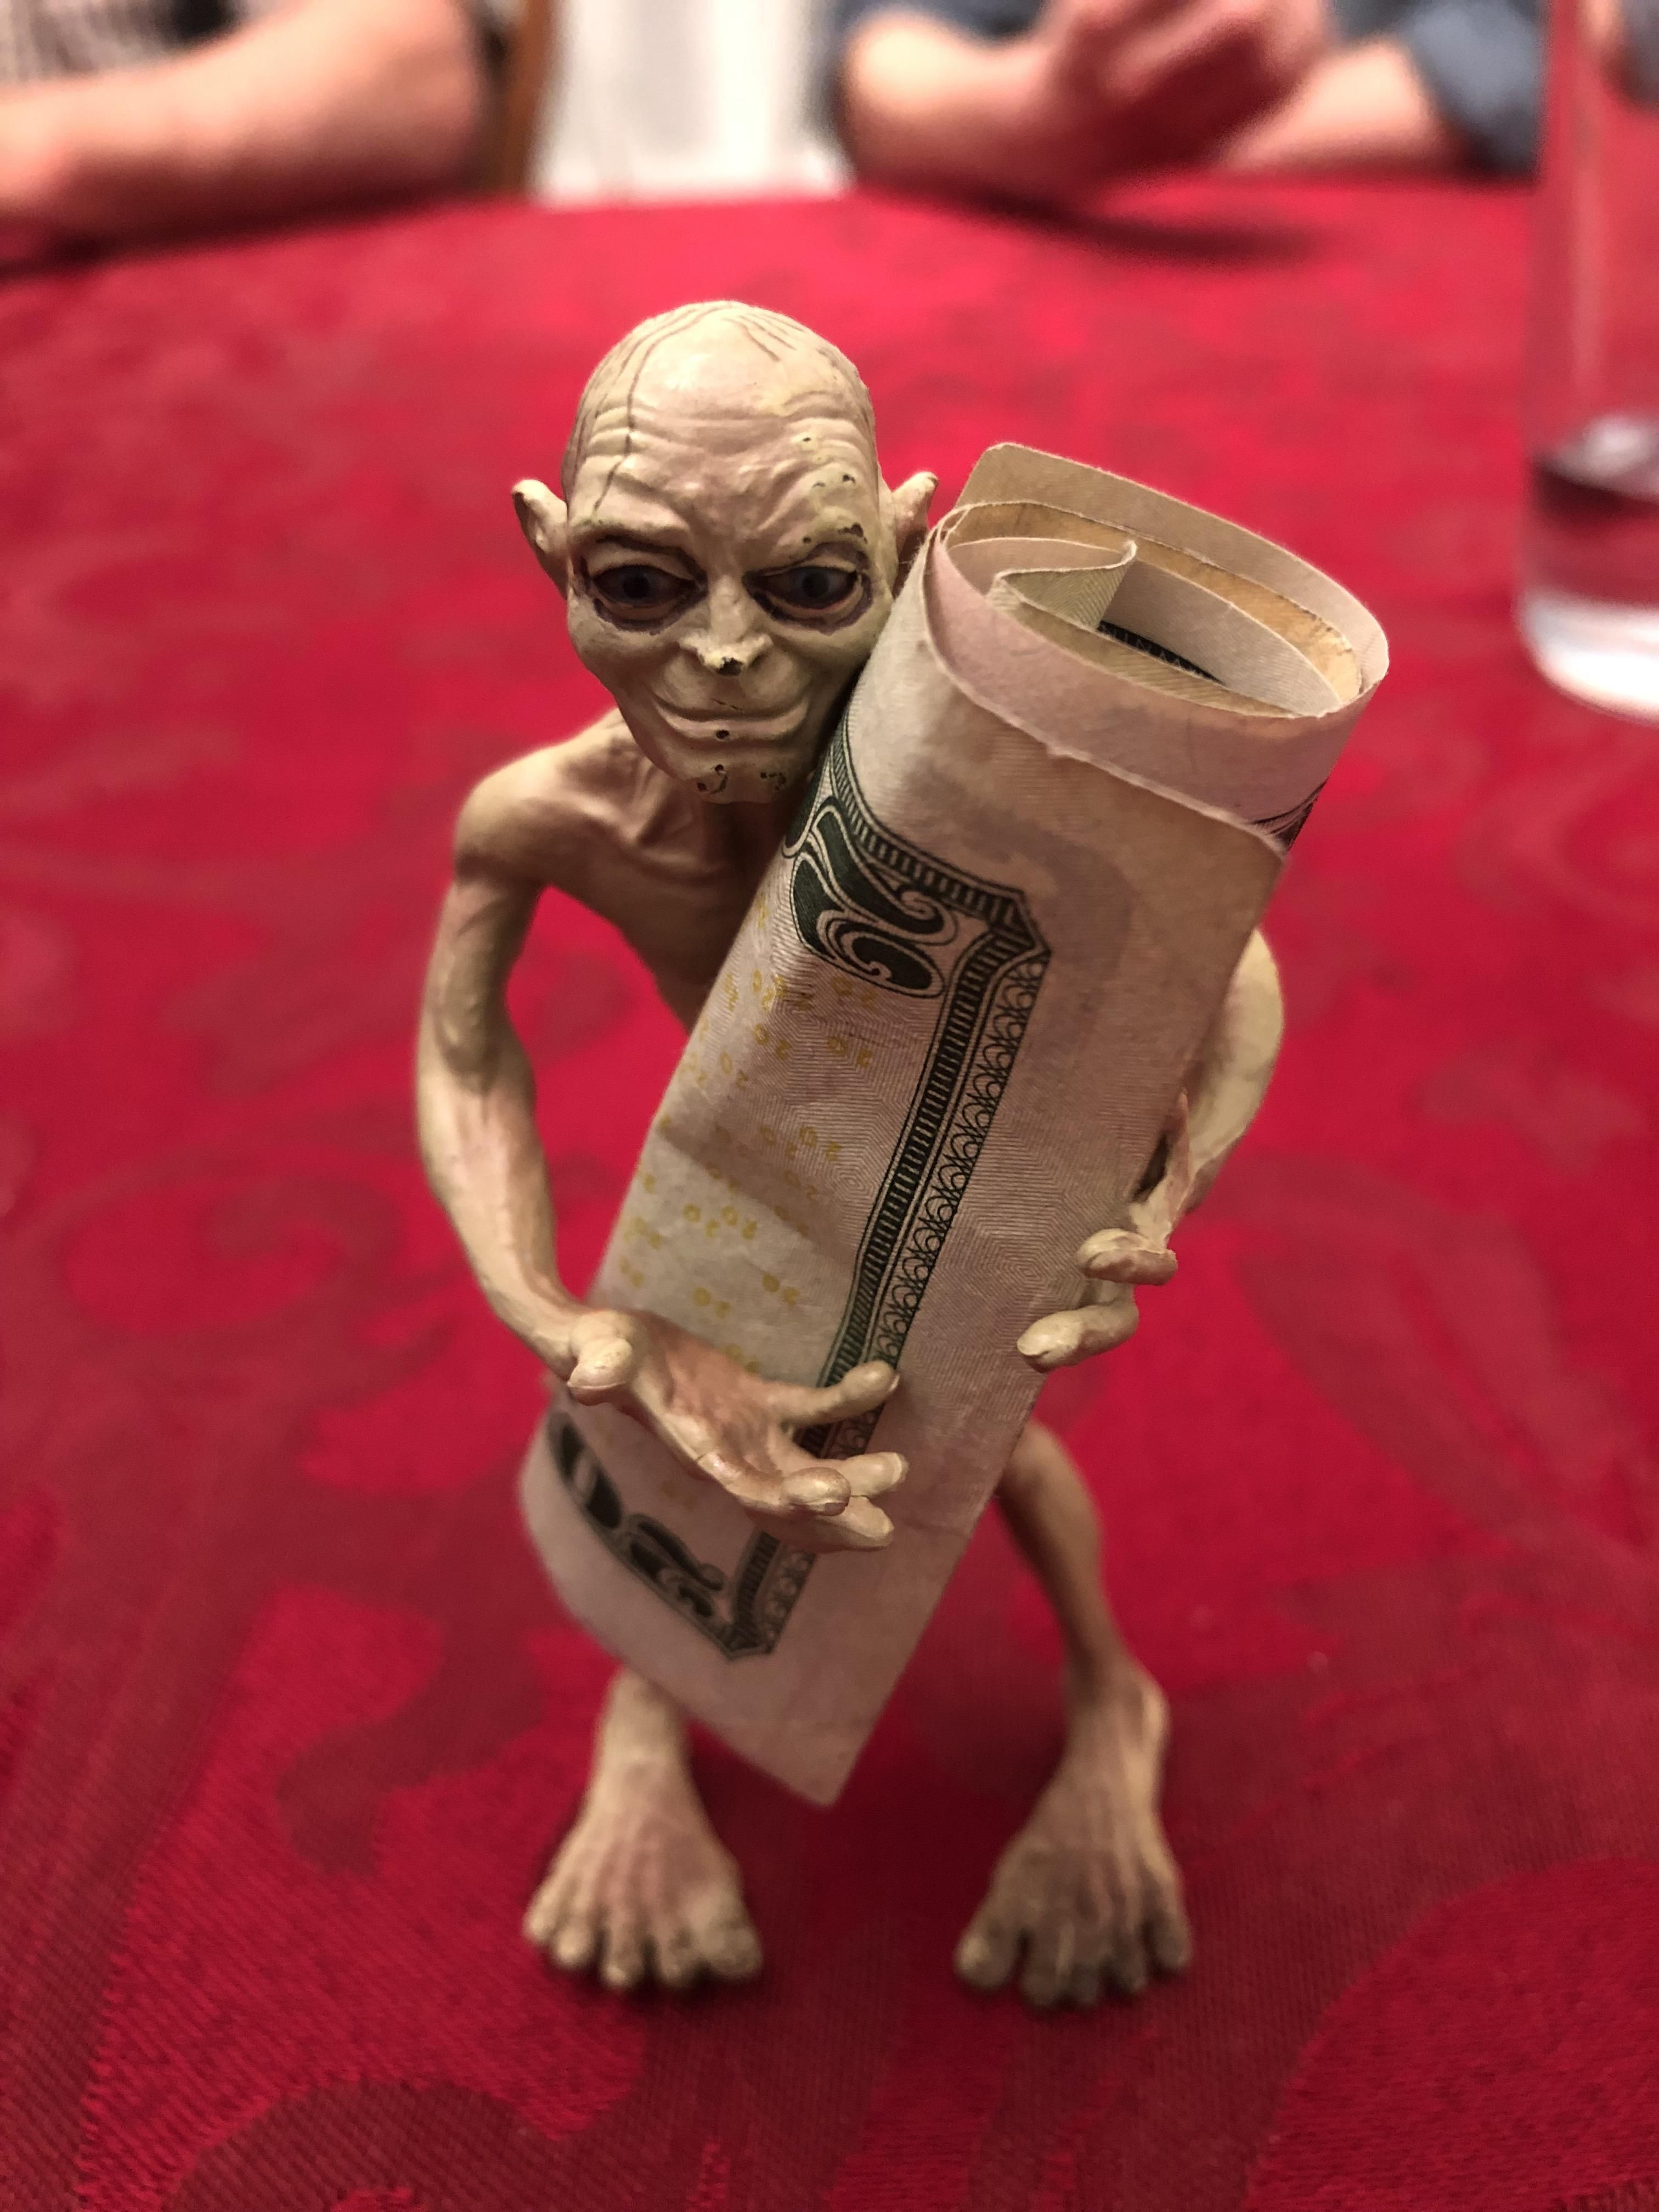 My family and I use this Gollum toy to hold the money when we play cards.